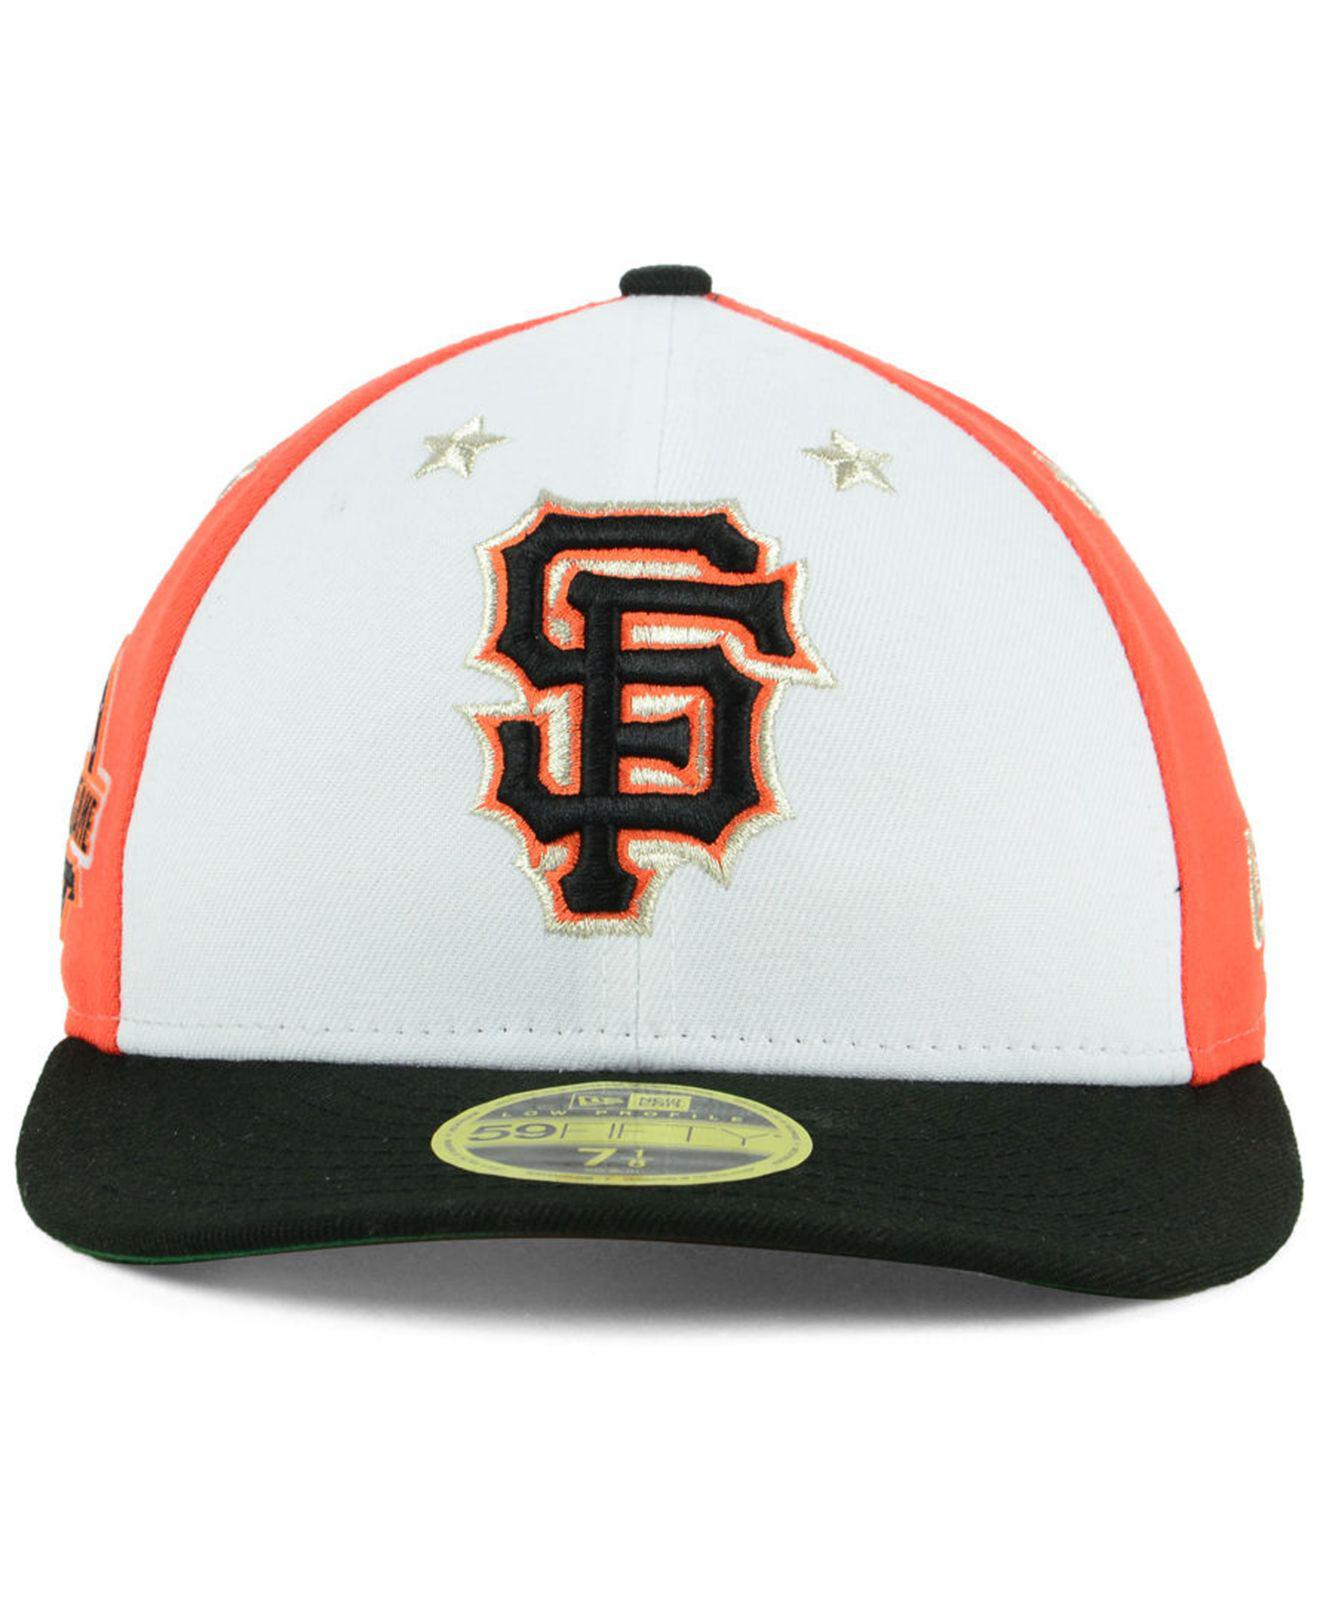 separation shoes 87c30 fe67e Lyst - KTZ San Francisco Giants All Star Game Patch Low Profile 59fifty  Fitted Cap 2018 for Men